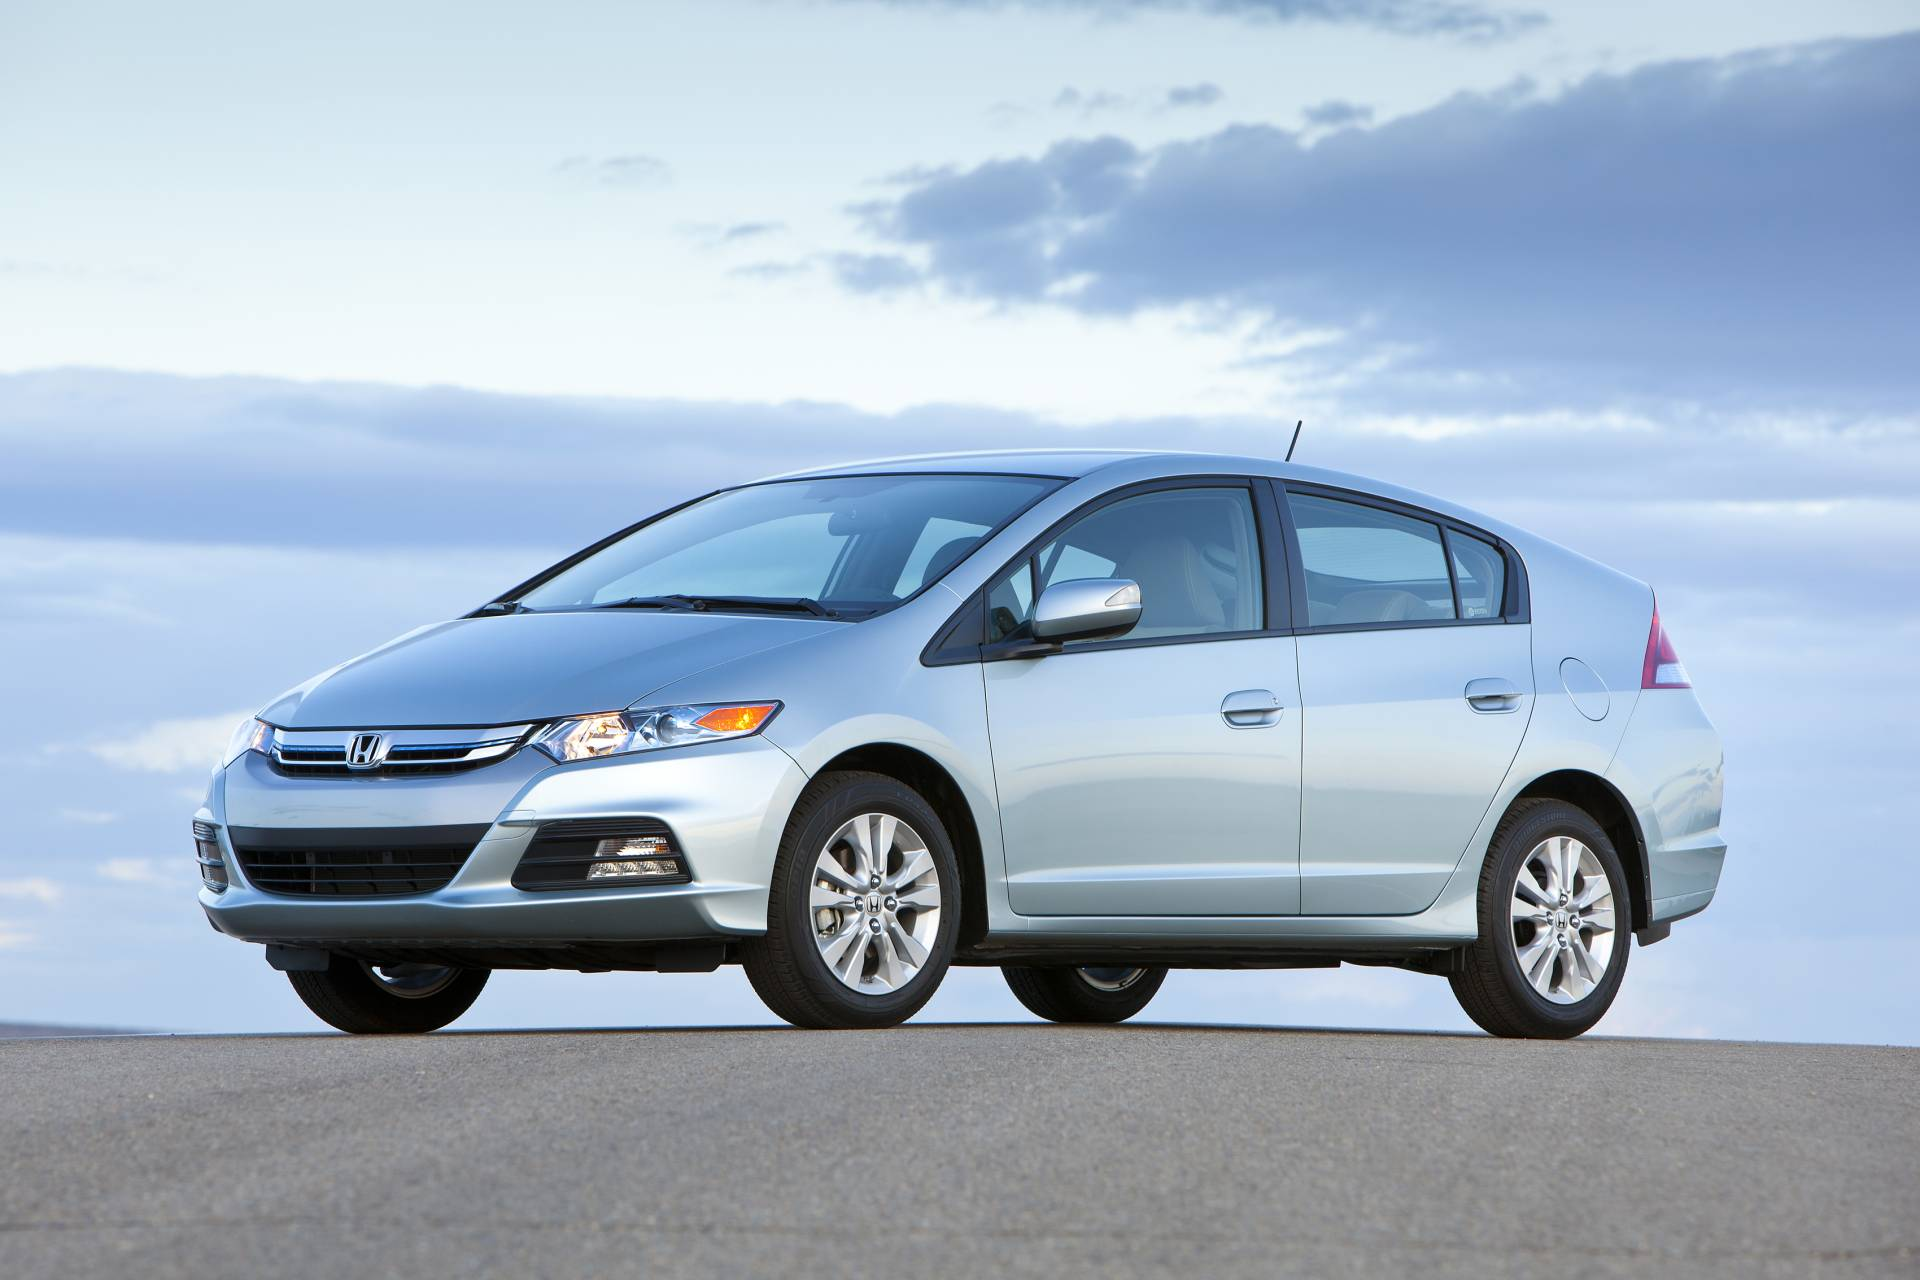 2013 Honda Insight #5